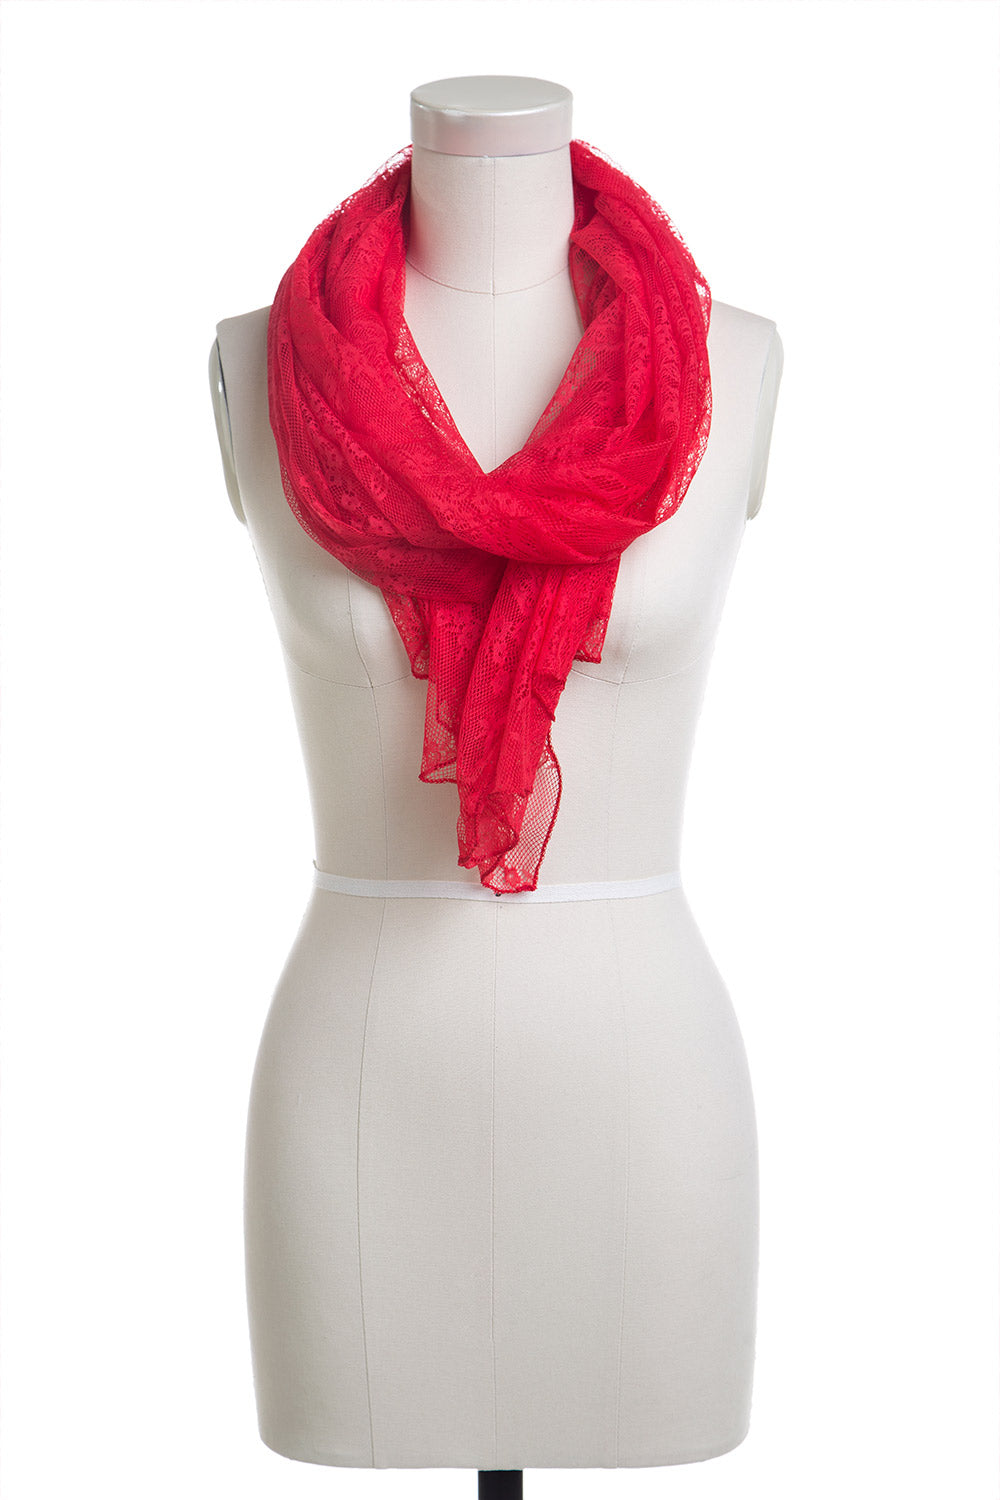 Type 1 Poppy Love Scarf